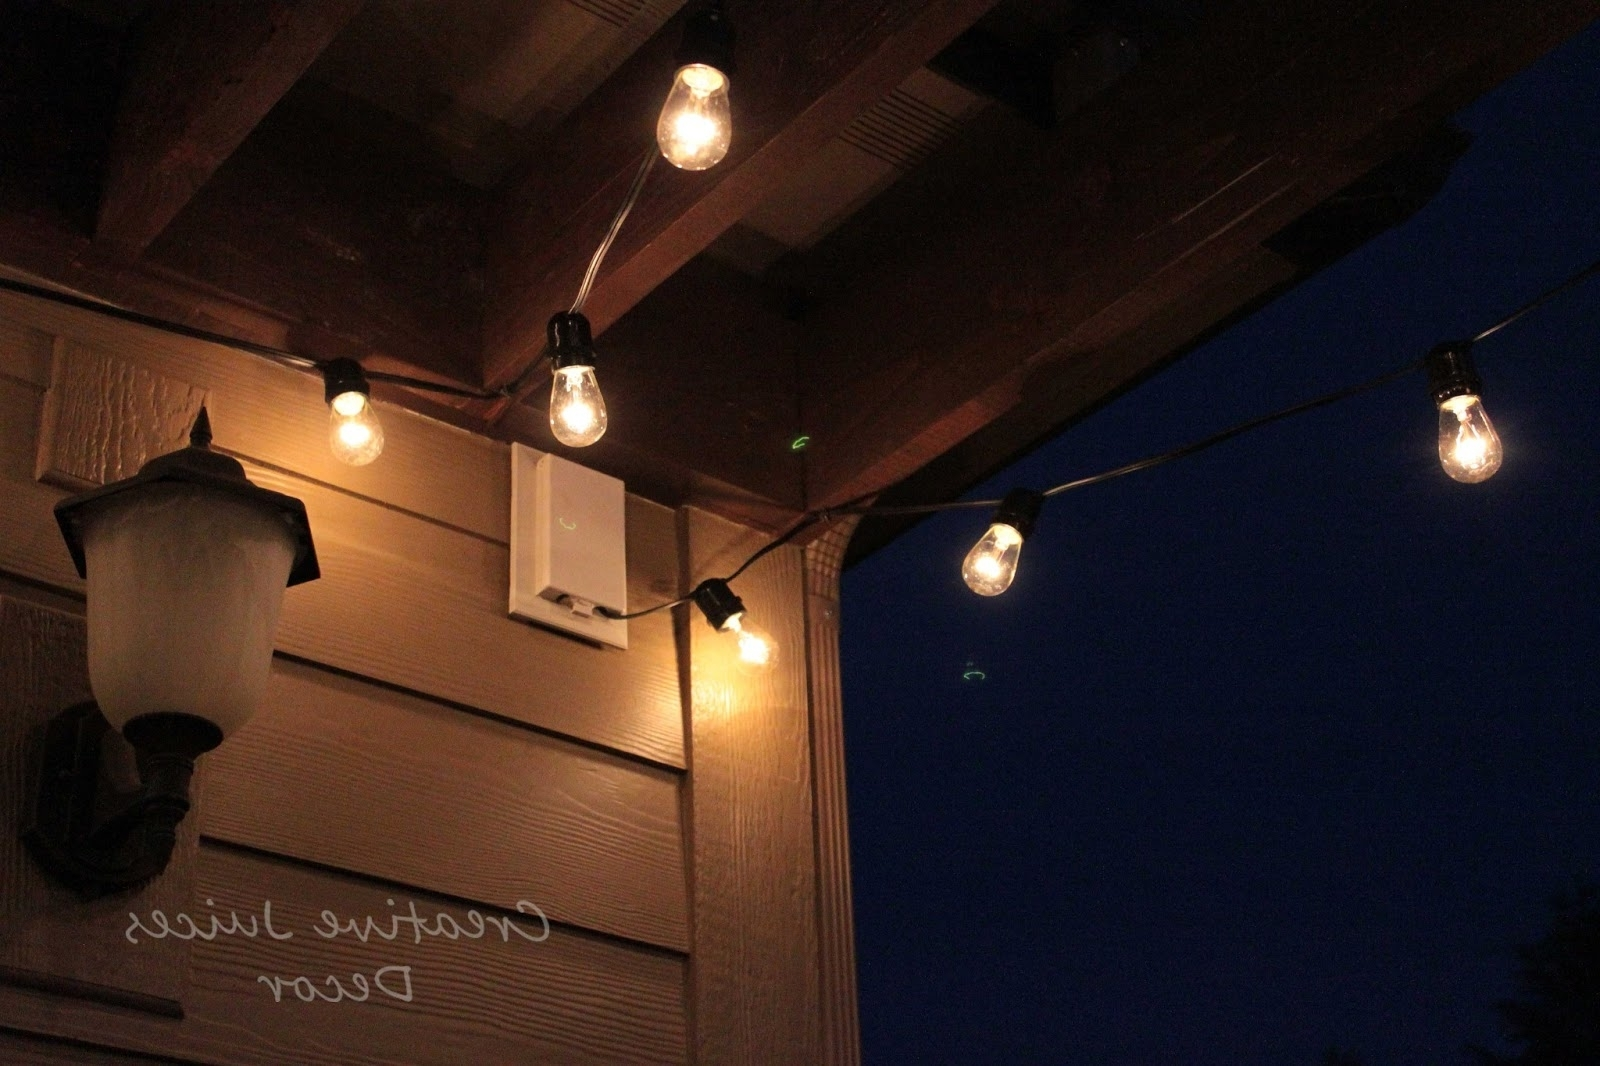 Creative Juices Decor: Adding String Patio Lights To The Pergola Regarding Current Solar Hanging Outdoor Patio Lights (View 12 of 20)